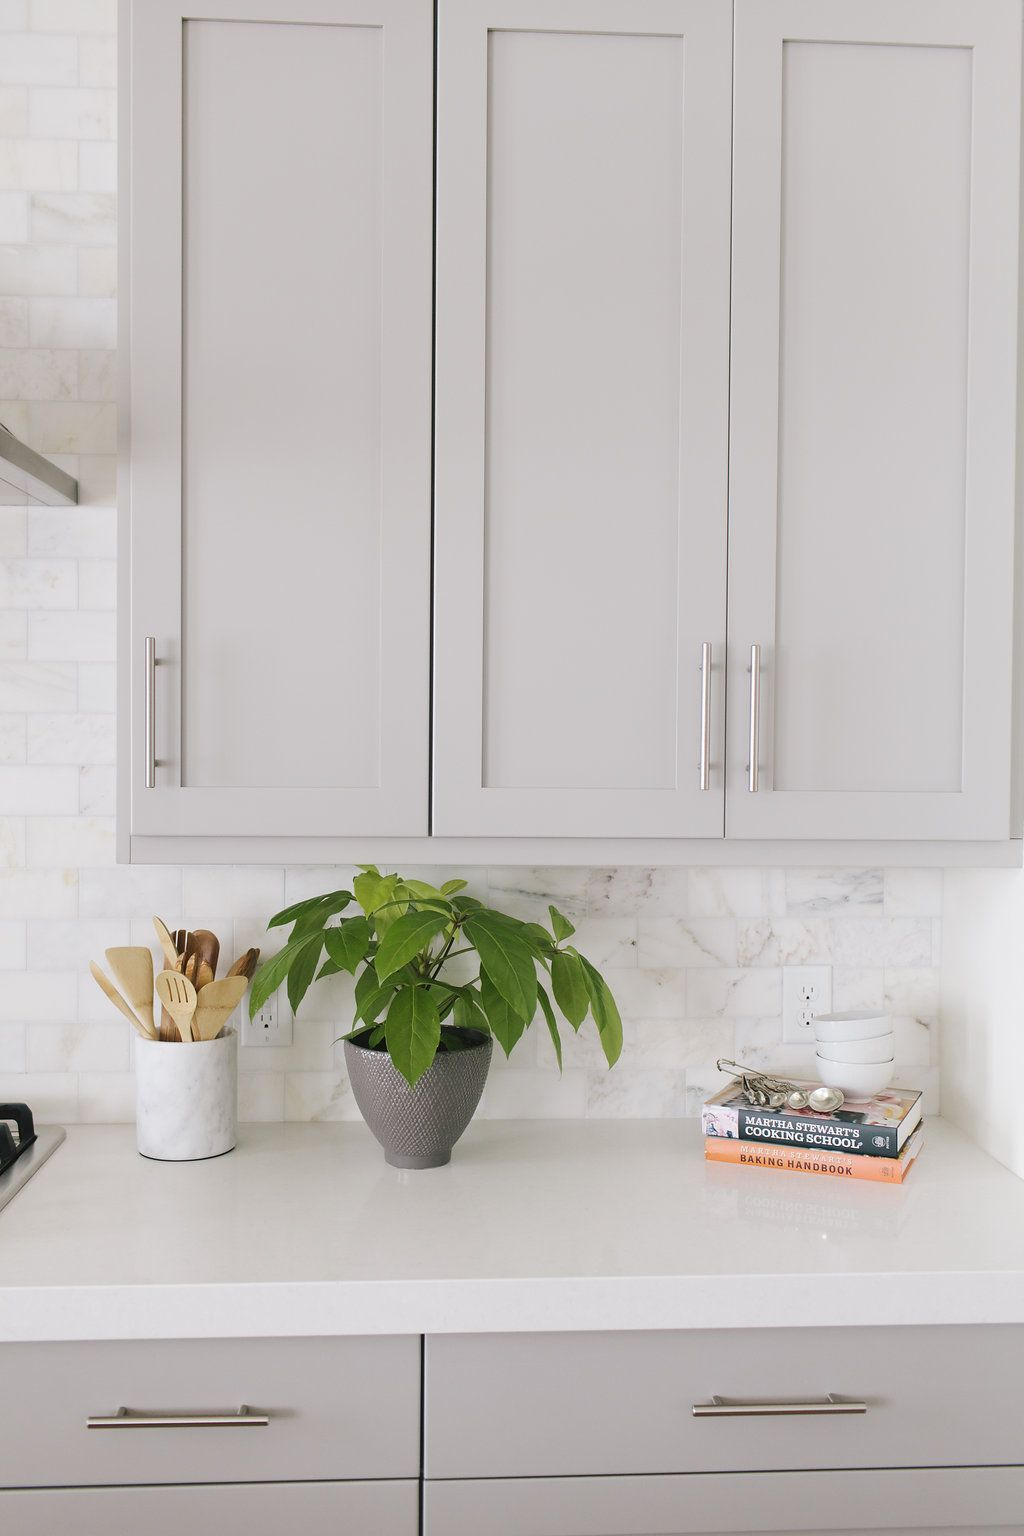 Cabinet Color Sherwin Williams Mindful Gray For The Home